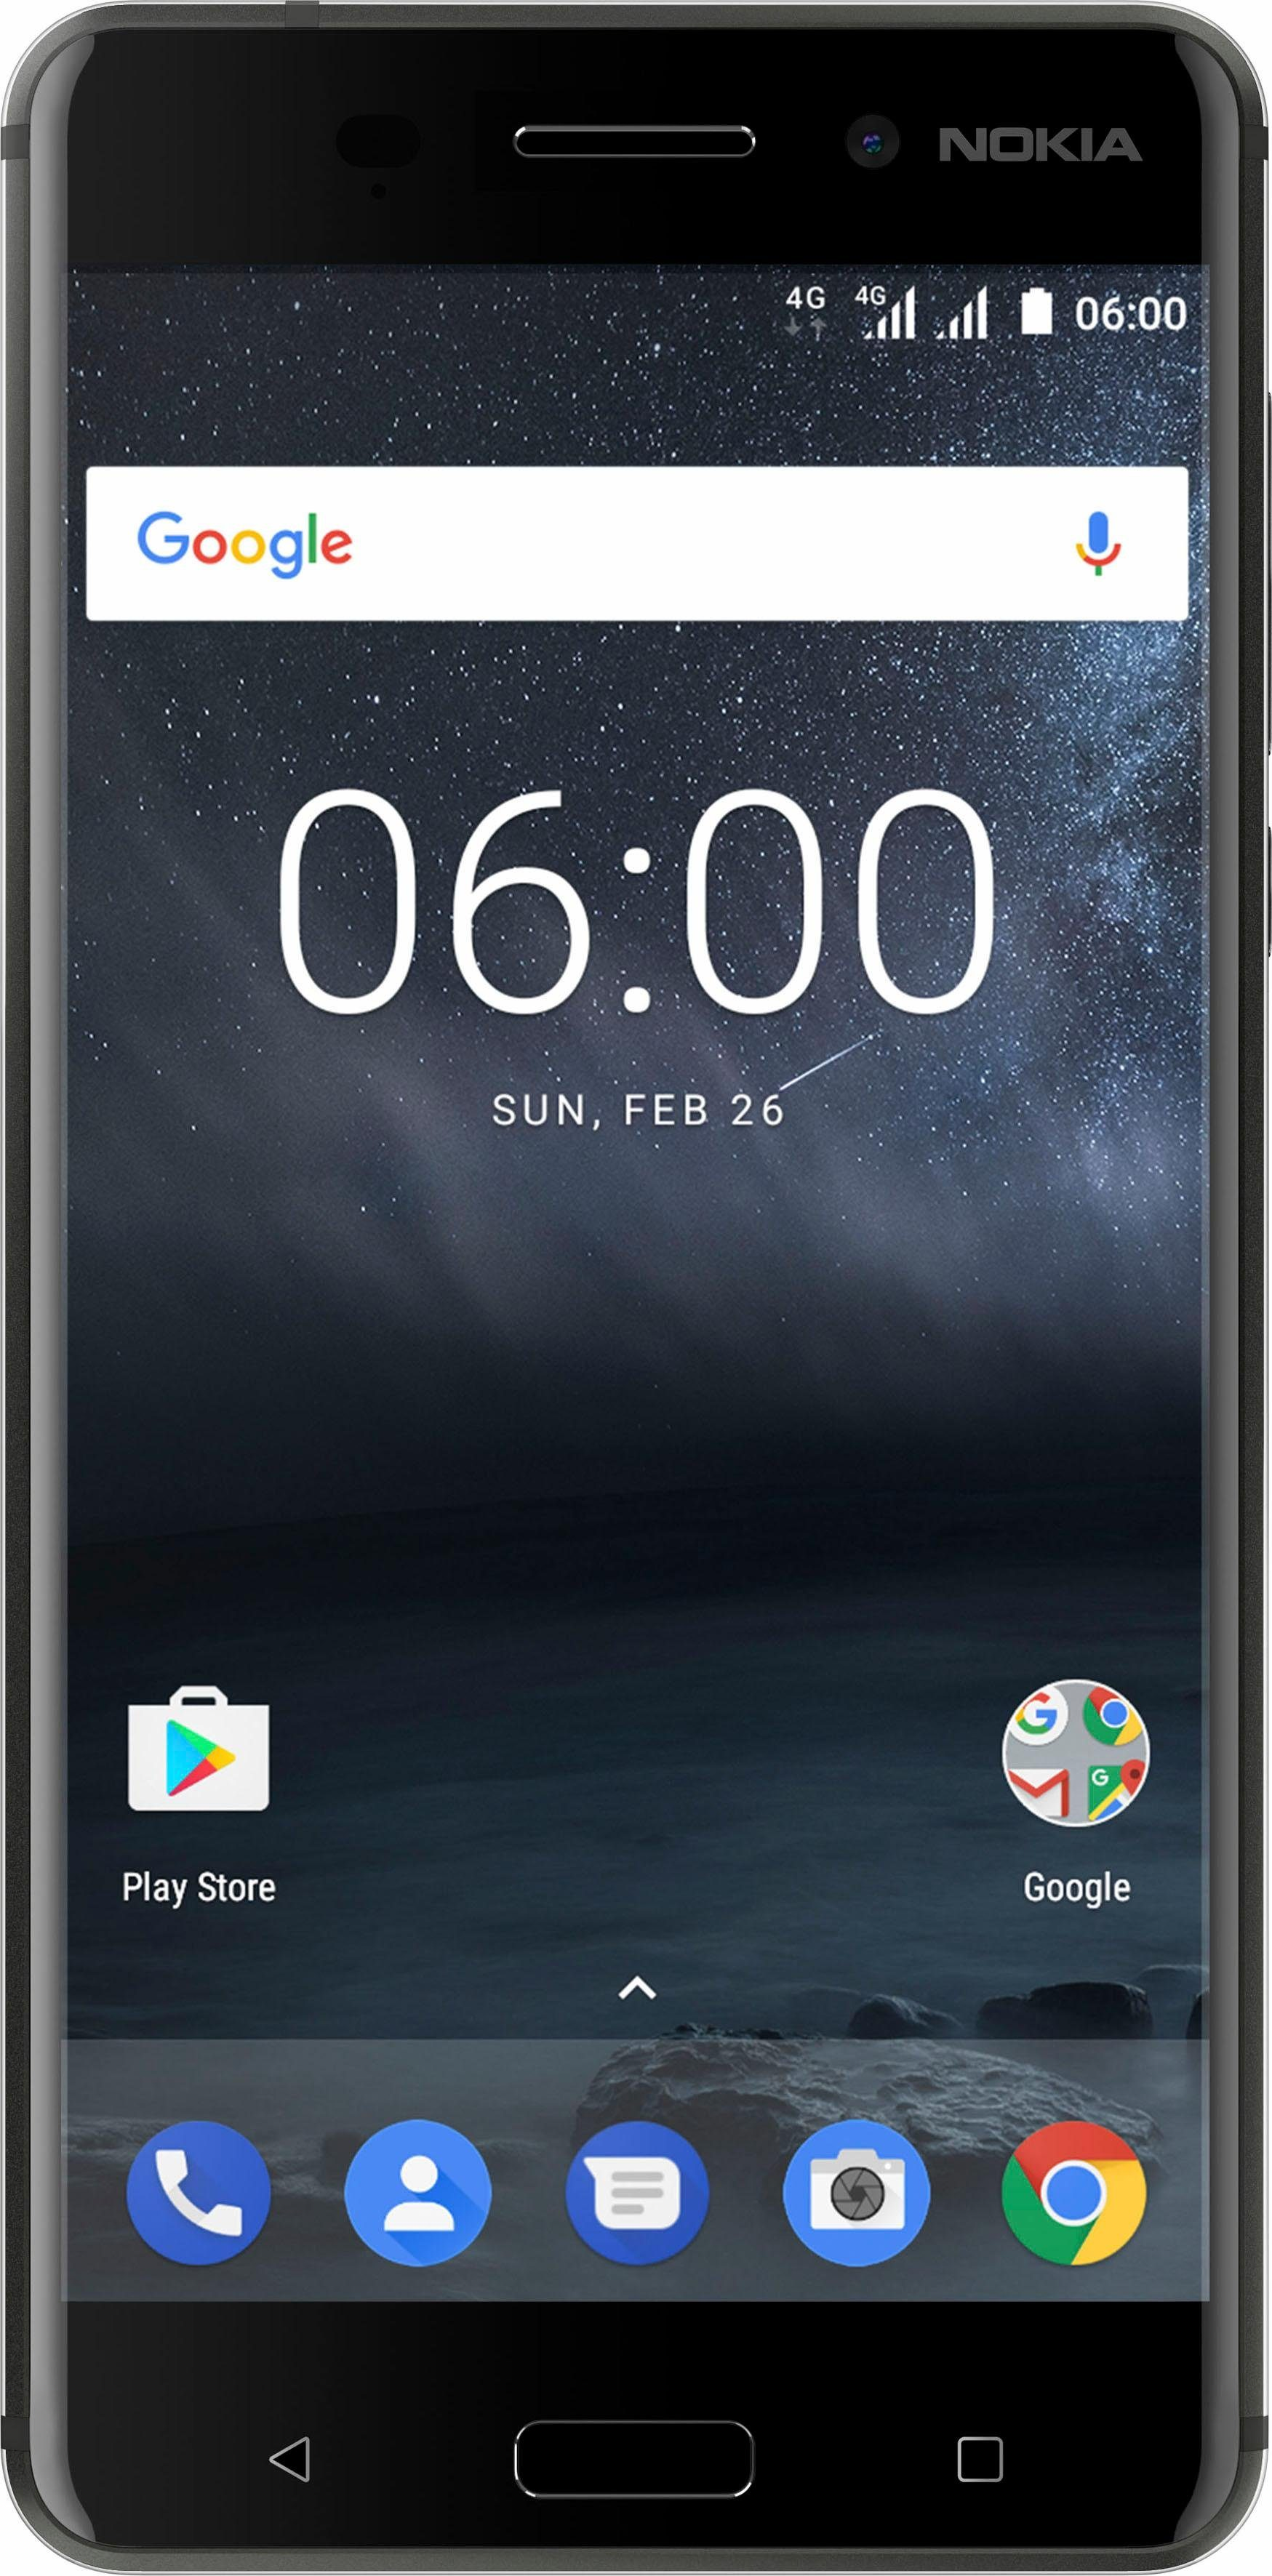 Nokia 6 Dual SIM Smartphone, 14 cm (5,5 Zoll) Display, LTE (4G), Android 7.0 (Nougat)